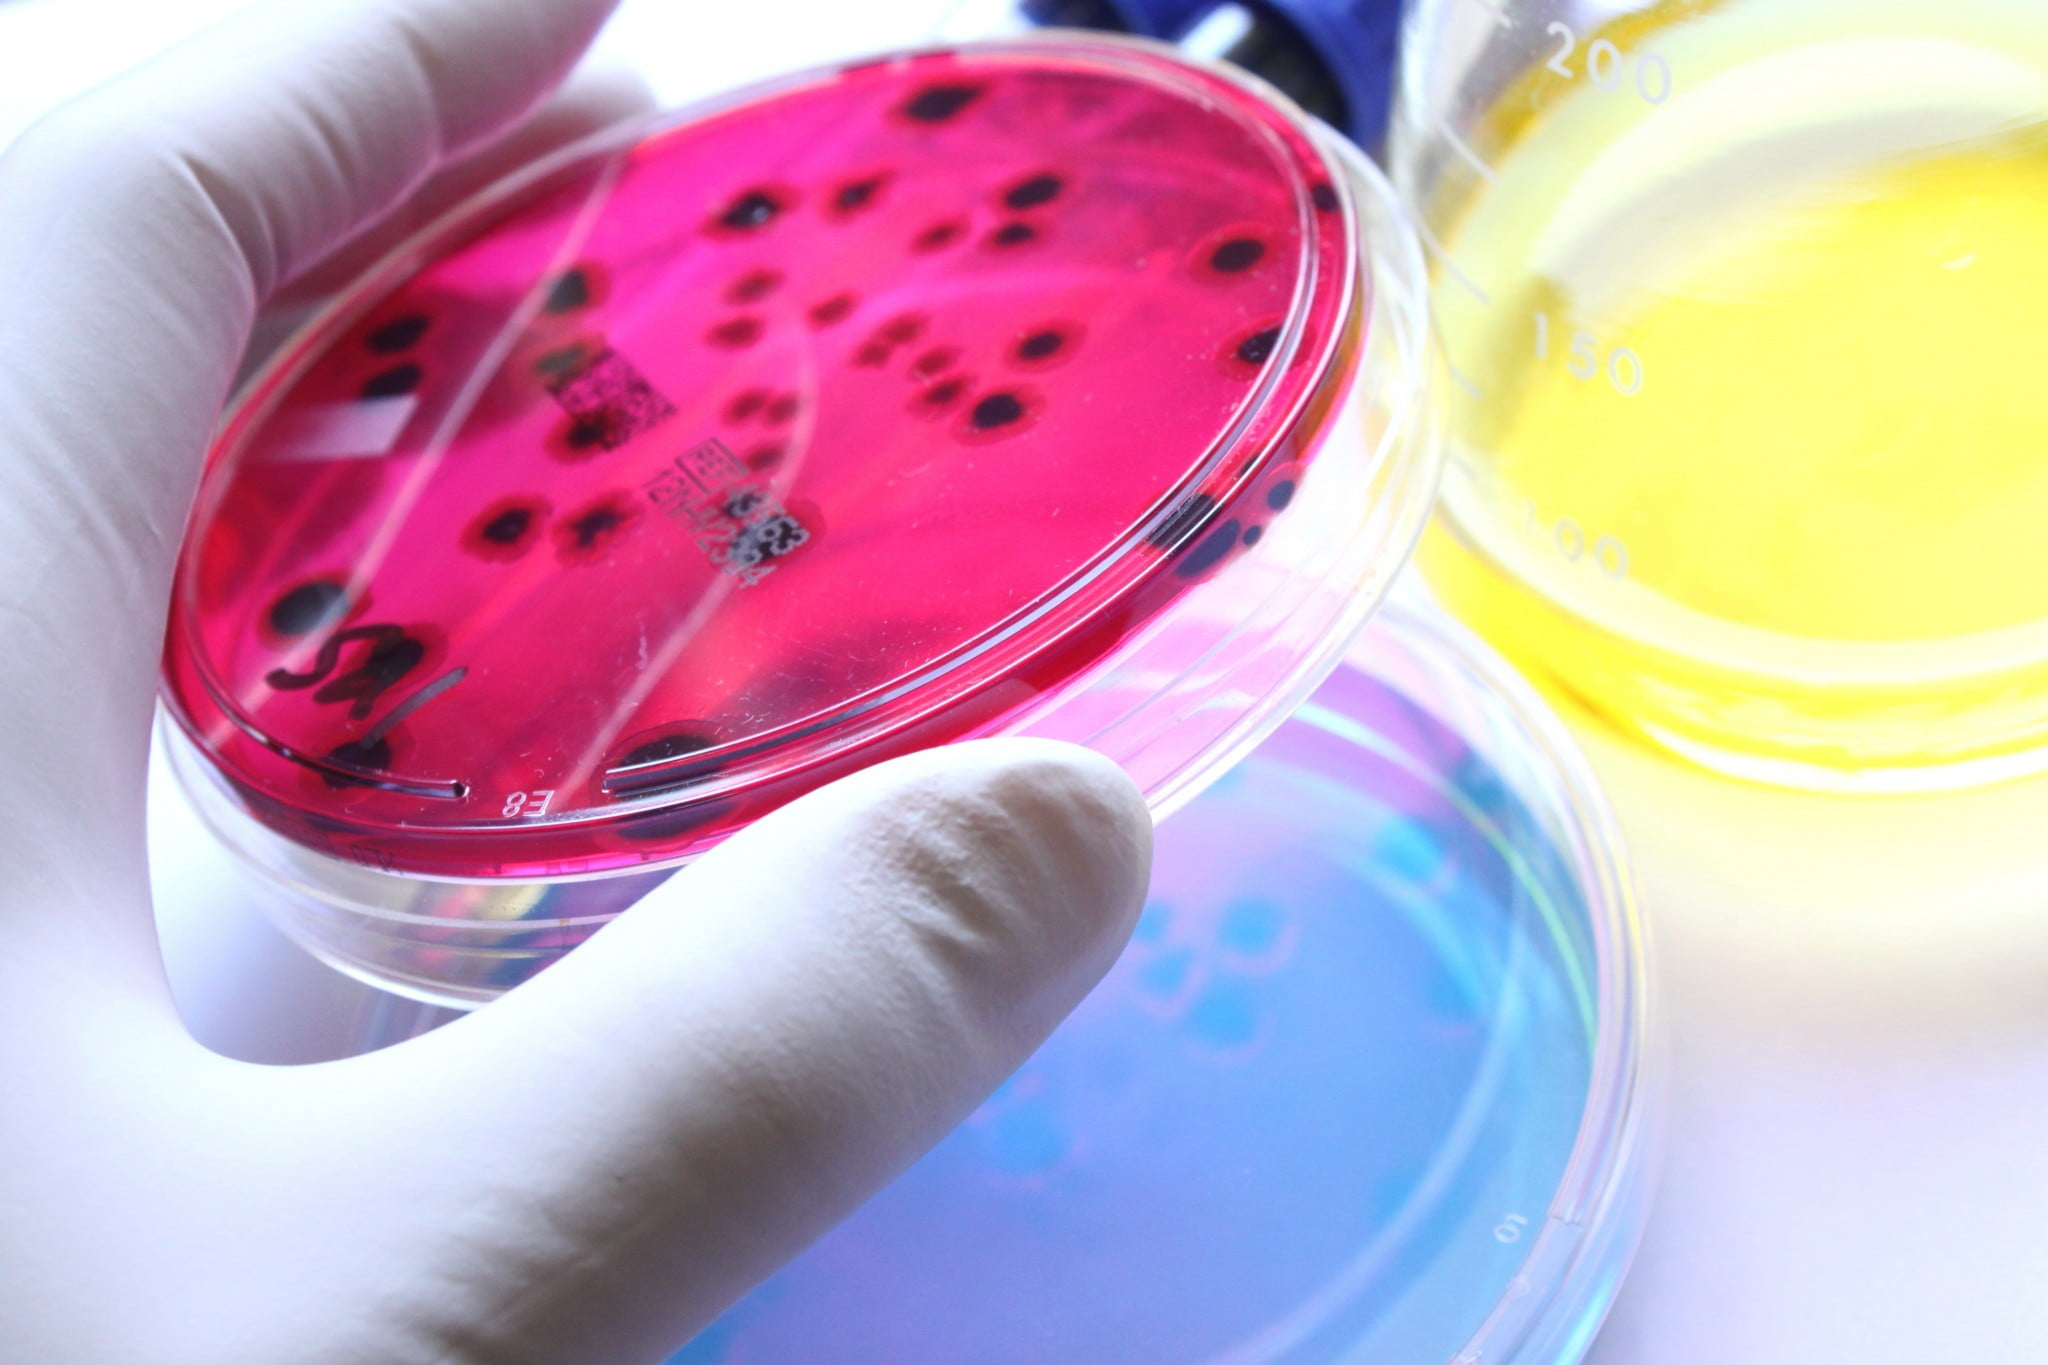 colourful bacteria in lab dishes: food safety